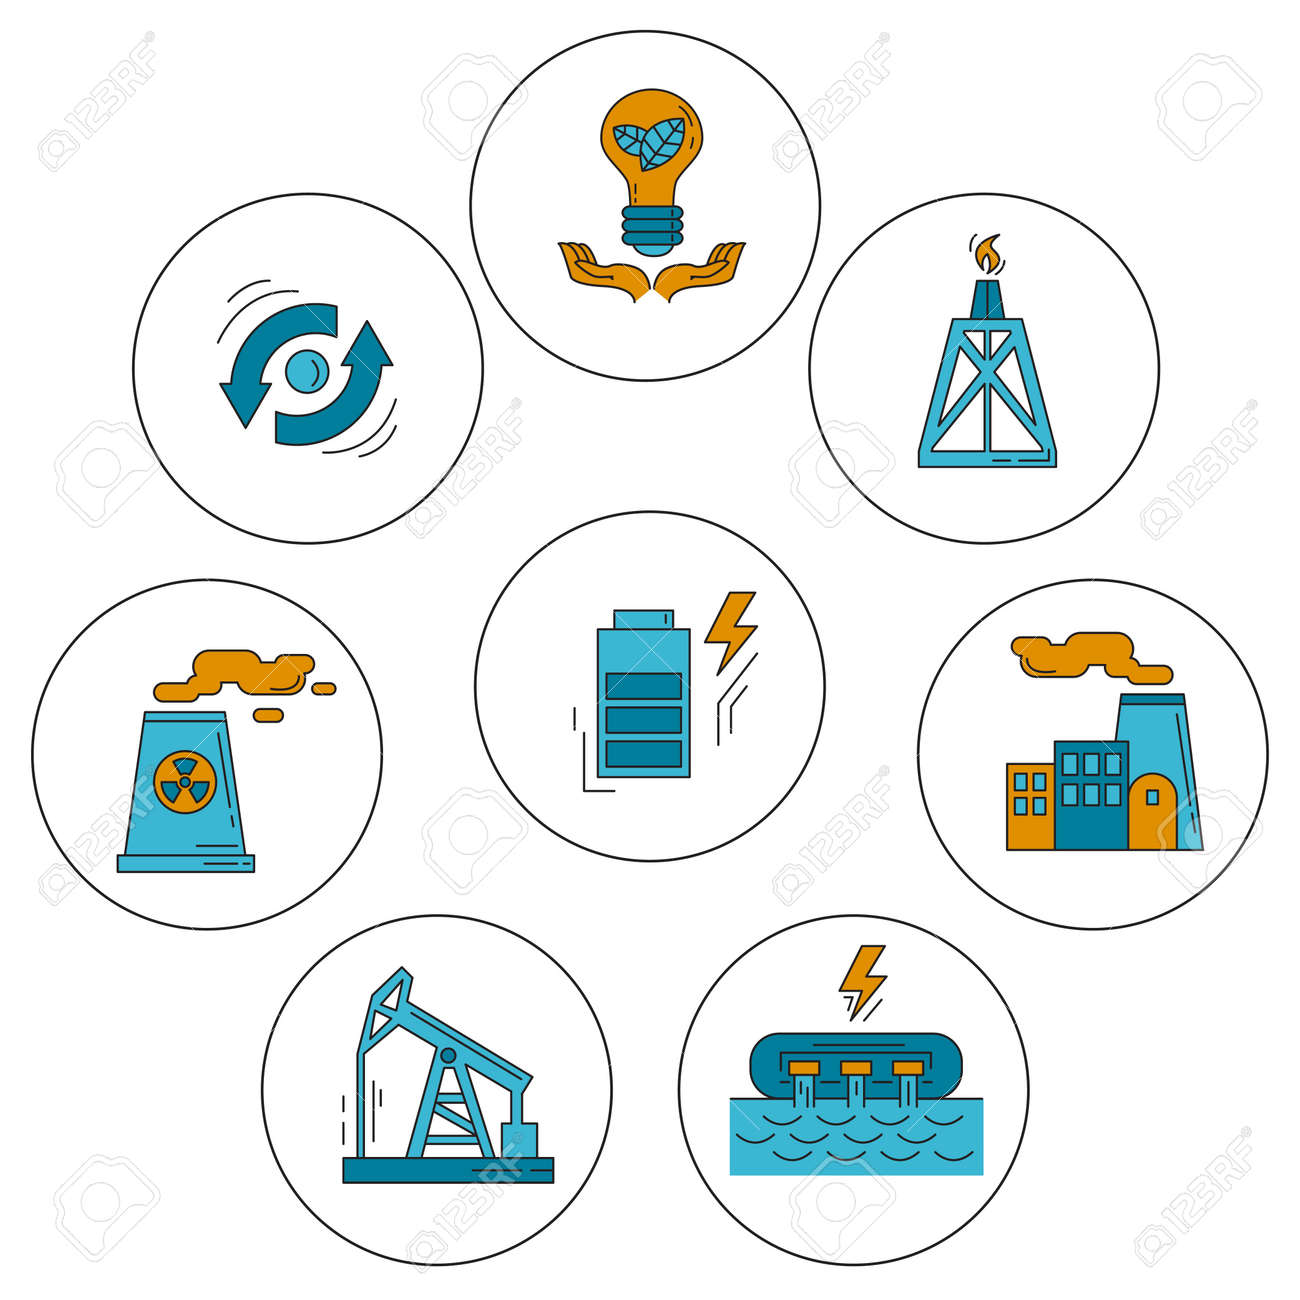 Energy Ecology and Pollution Vector set of icons Linear design - 58000441